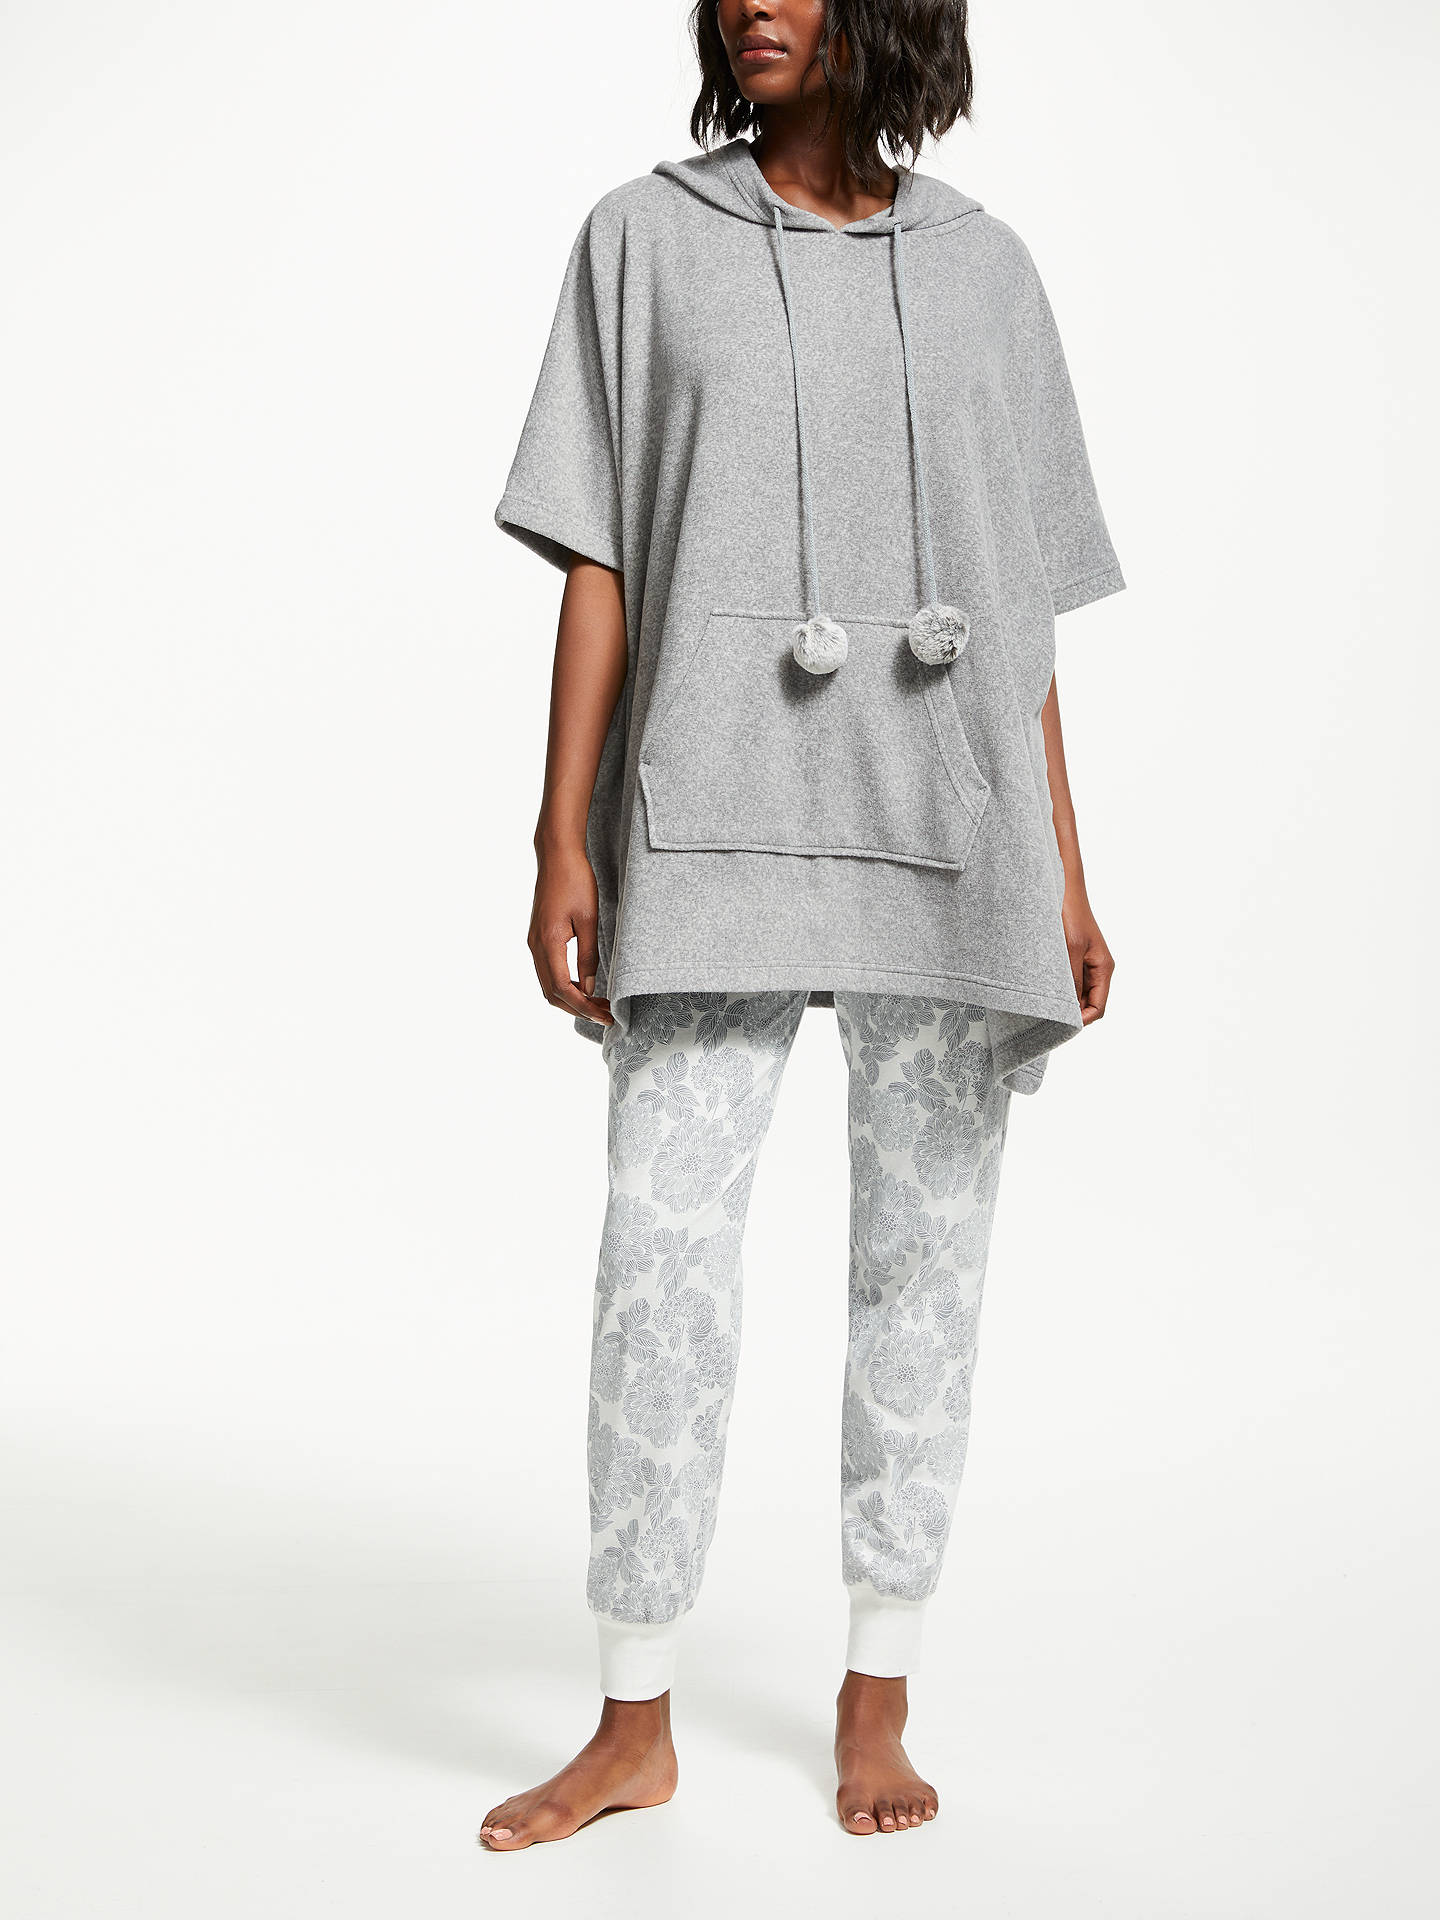 BuyJohn Lewis & Partners Fleece Poncho, Grey Online at johnlewis.com